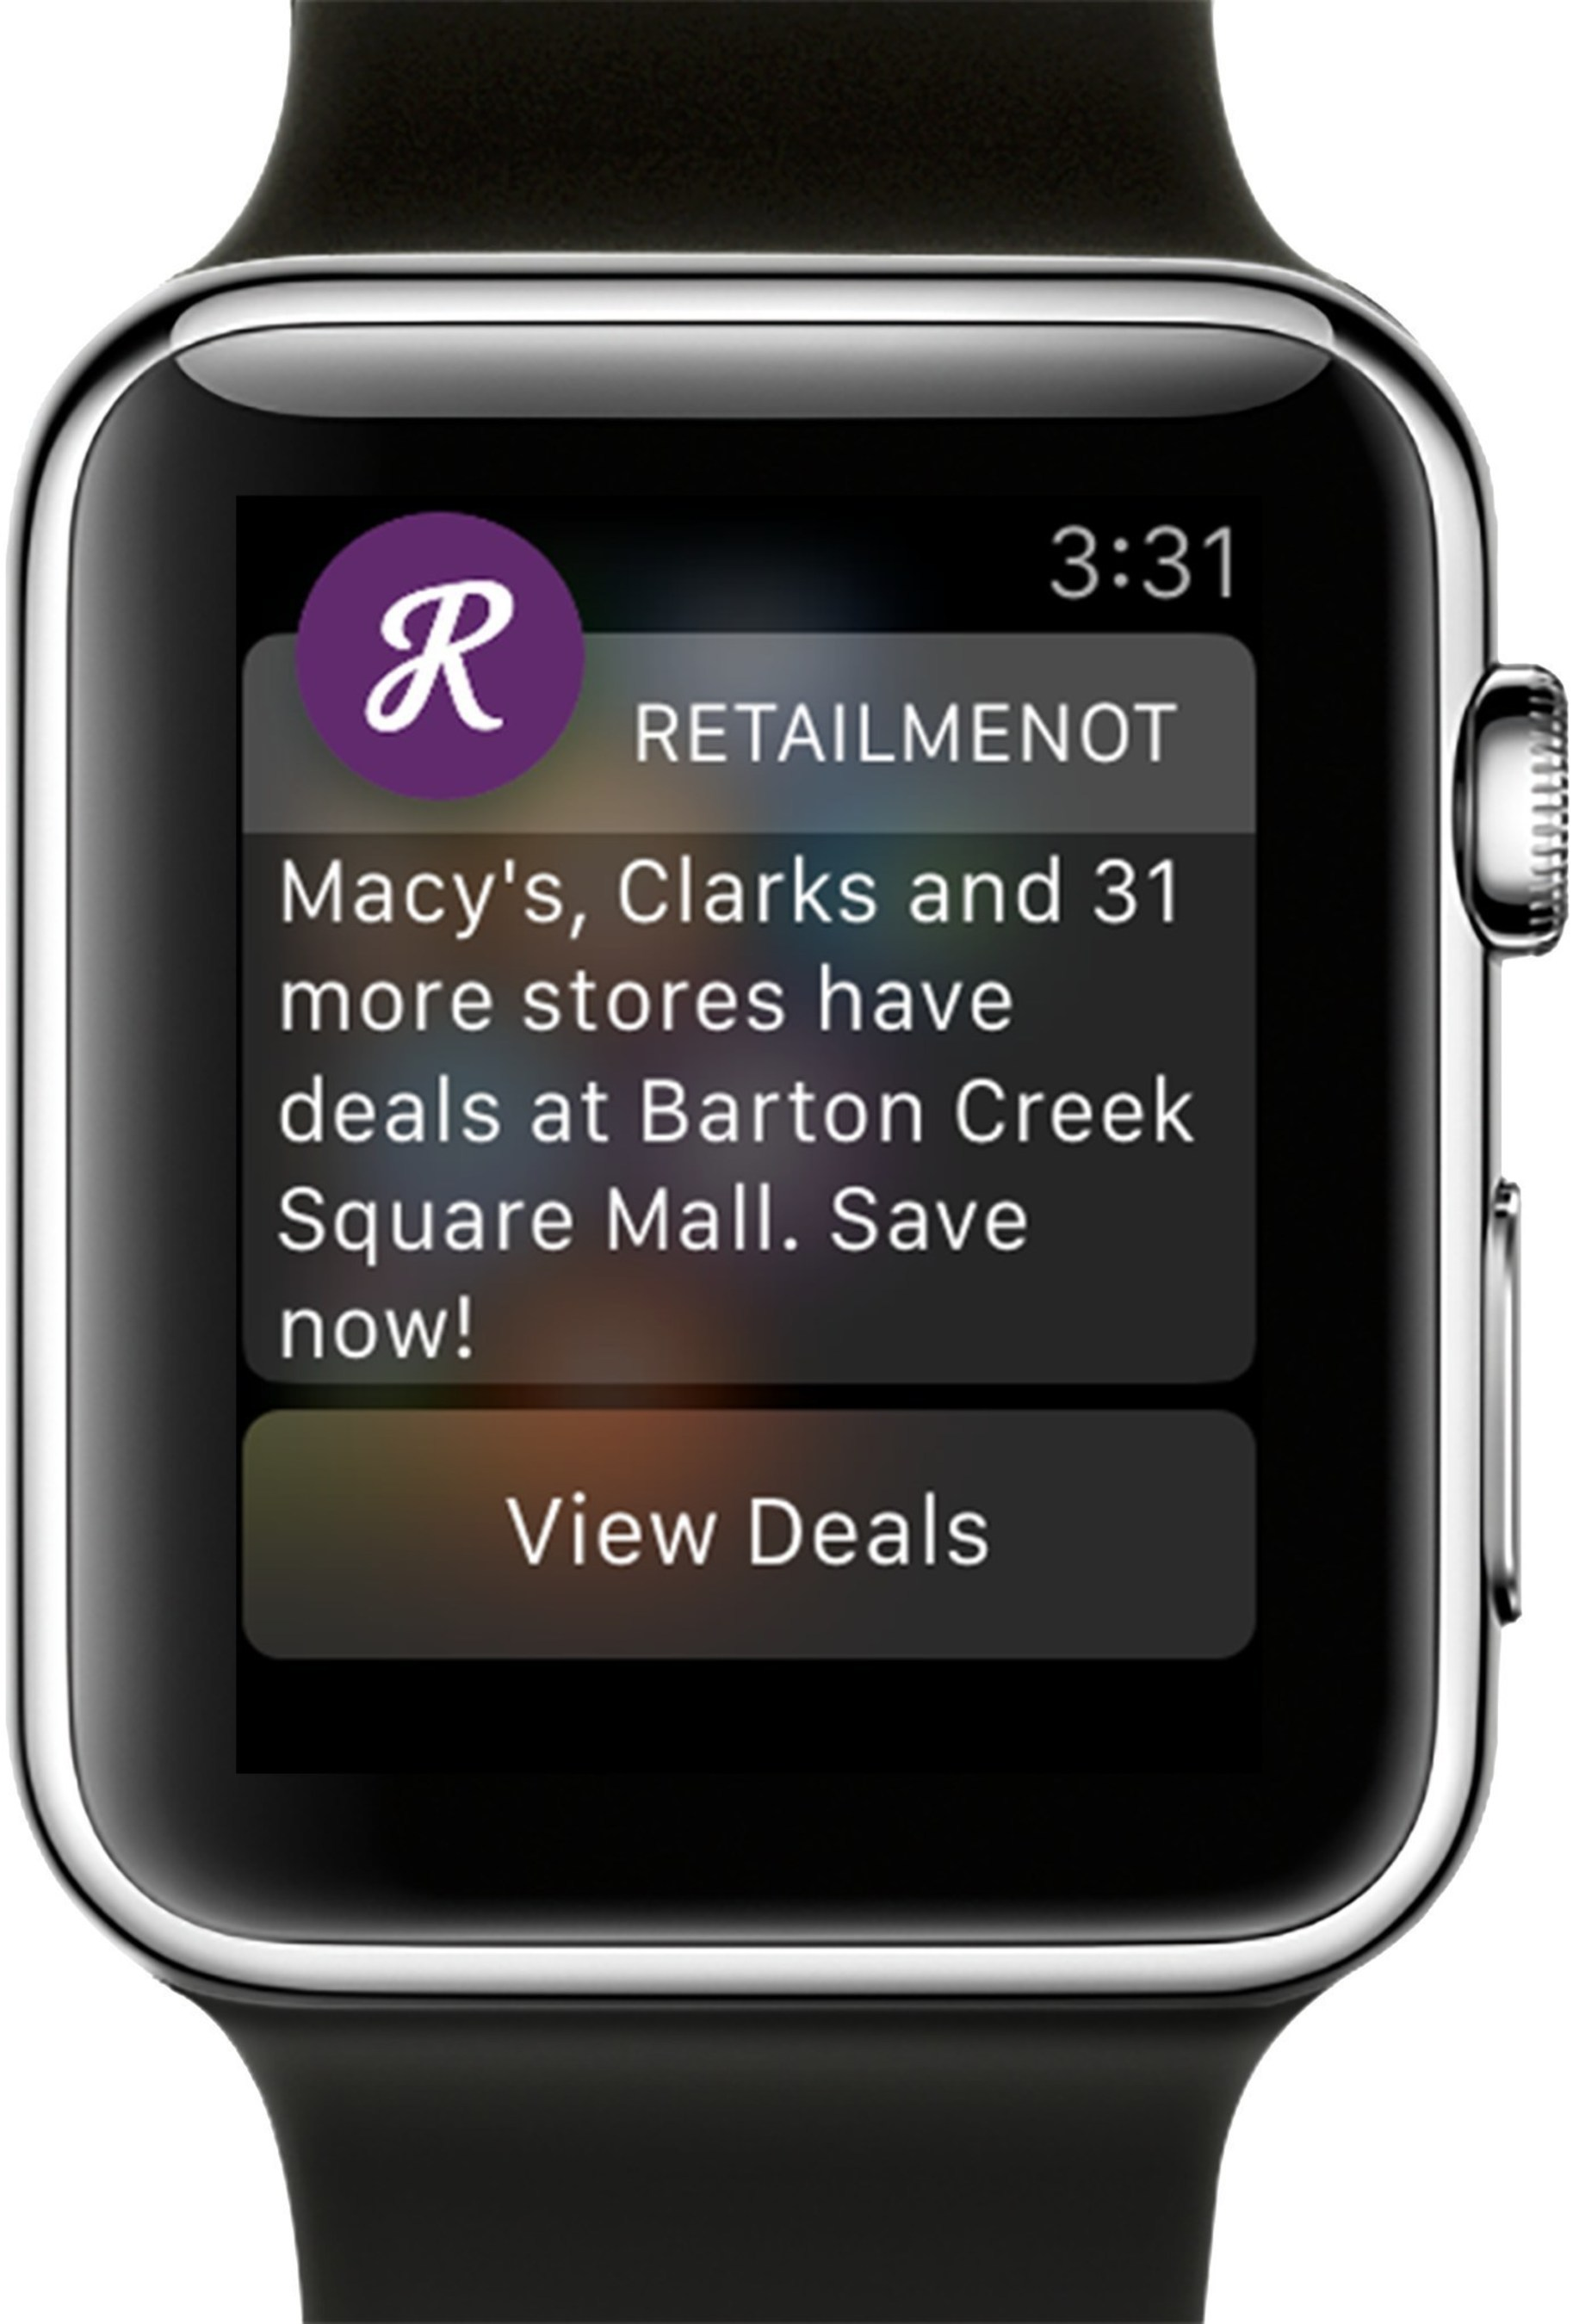 Nearby Savings Available at the Tap of Your Wrist: Introducing the RetailMeNot Apple Watch App!